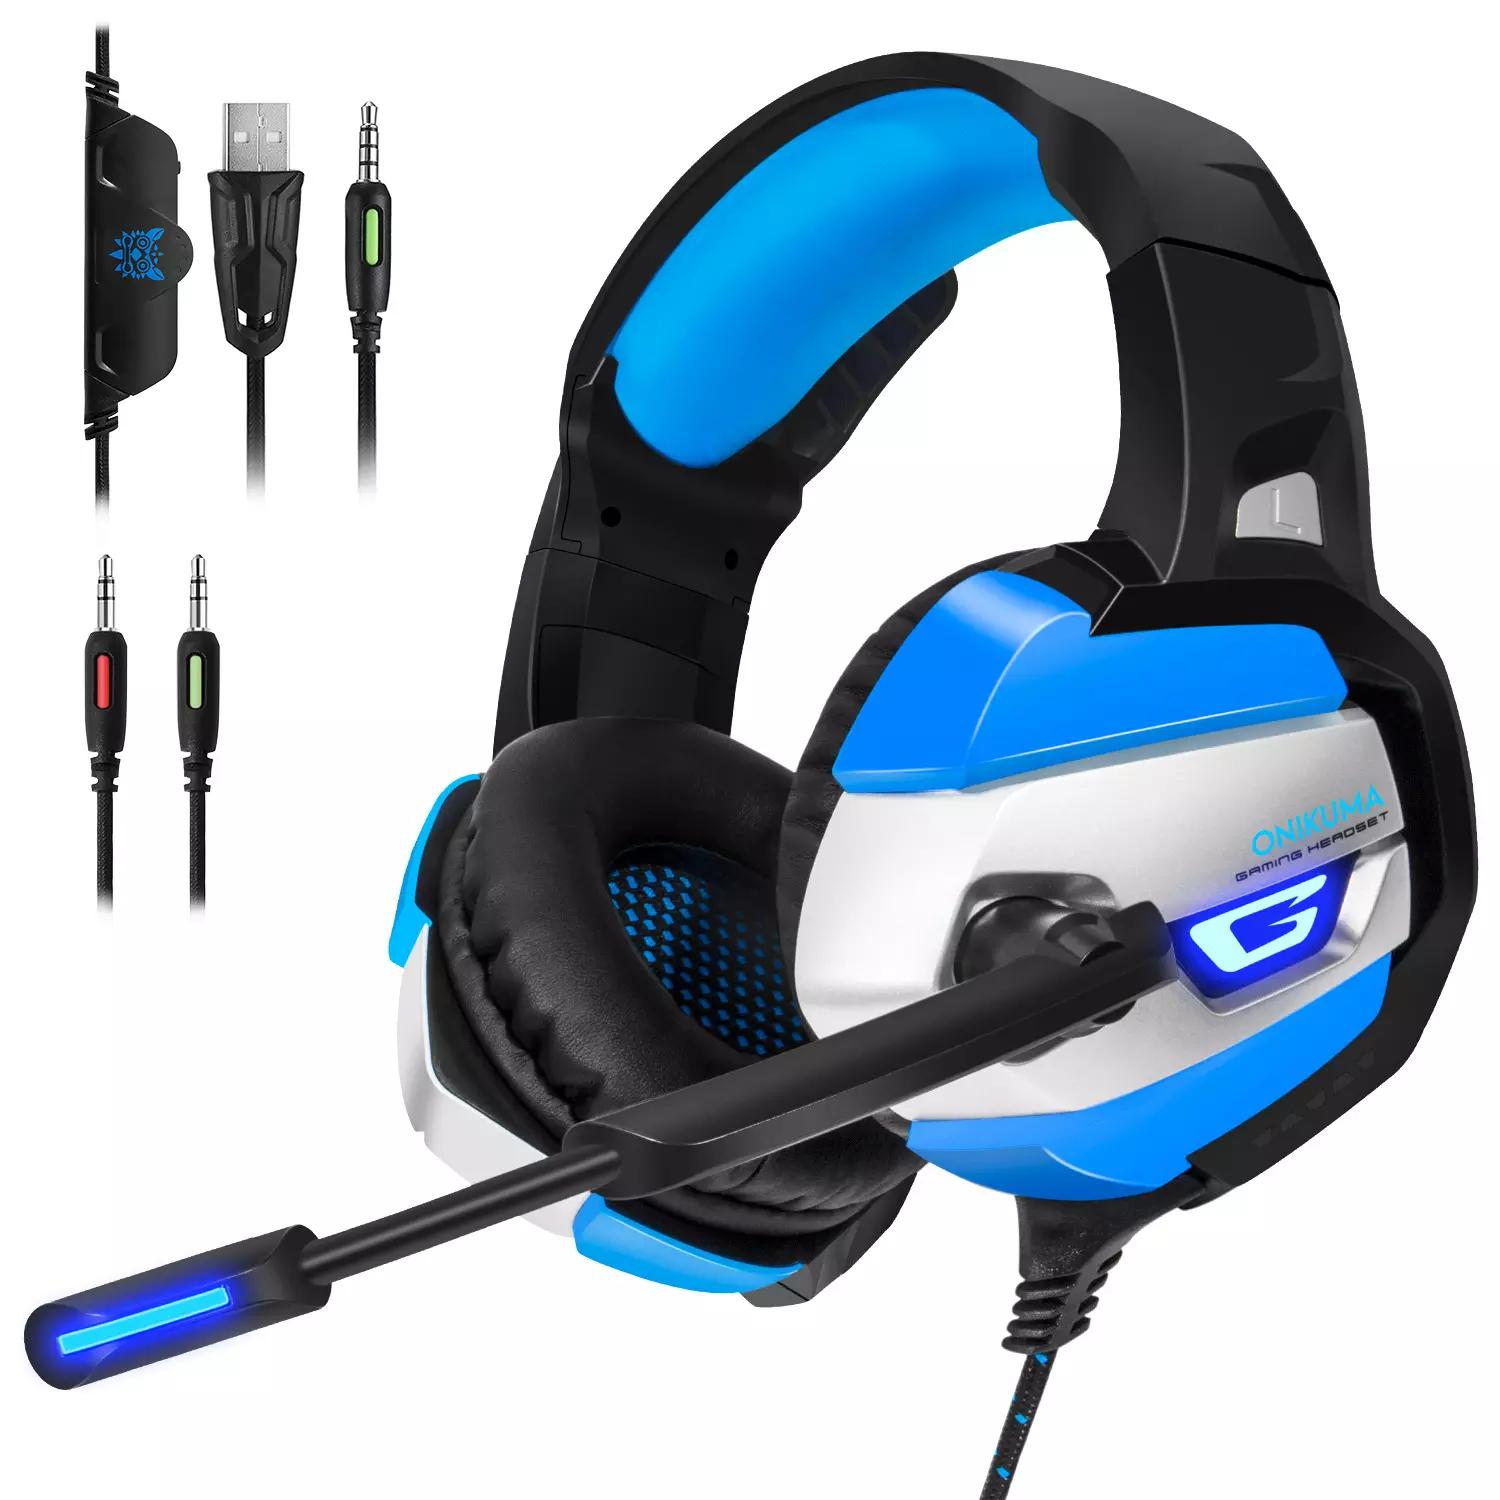 Onikuma K5 Gaming Headset Gamer Stereo Deep Bass Led Gaming Headphones For Pc Laptop Notebook Computer Ps4 With Microphone Best Earbuds Under 50 Best Headphones Under 50 From Michellemi 18 1 Dhgate Com